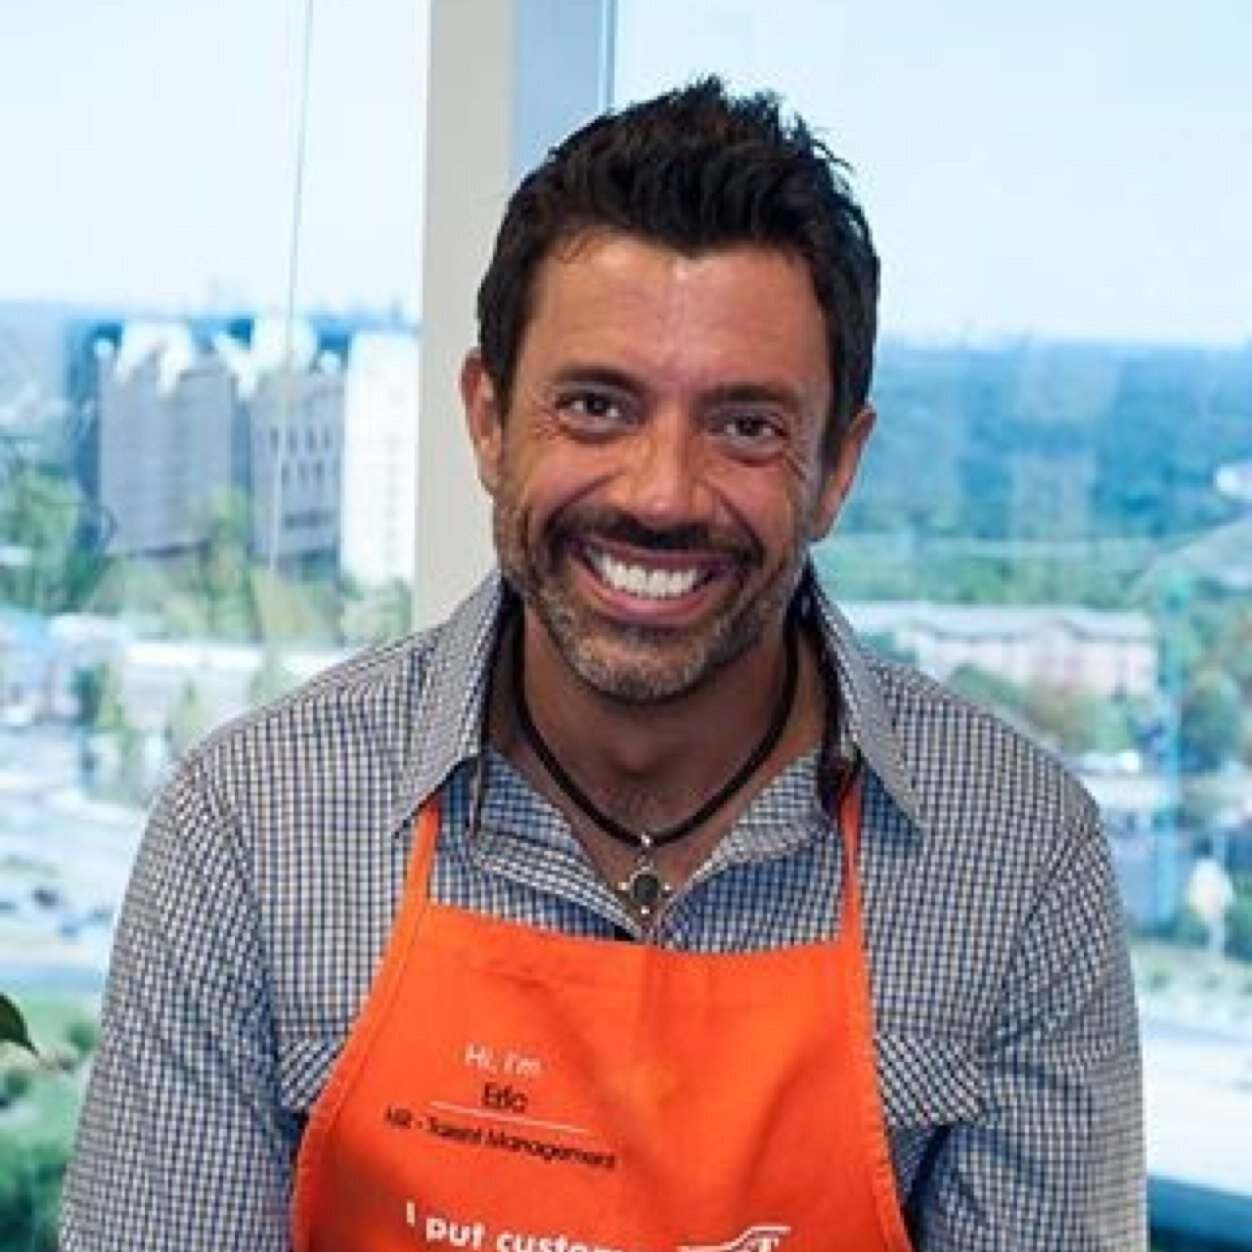 Eric Schelling S Email Phone The Home Depot S Head Of Global Talent Acquisition Email